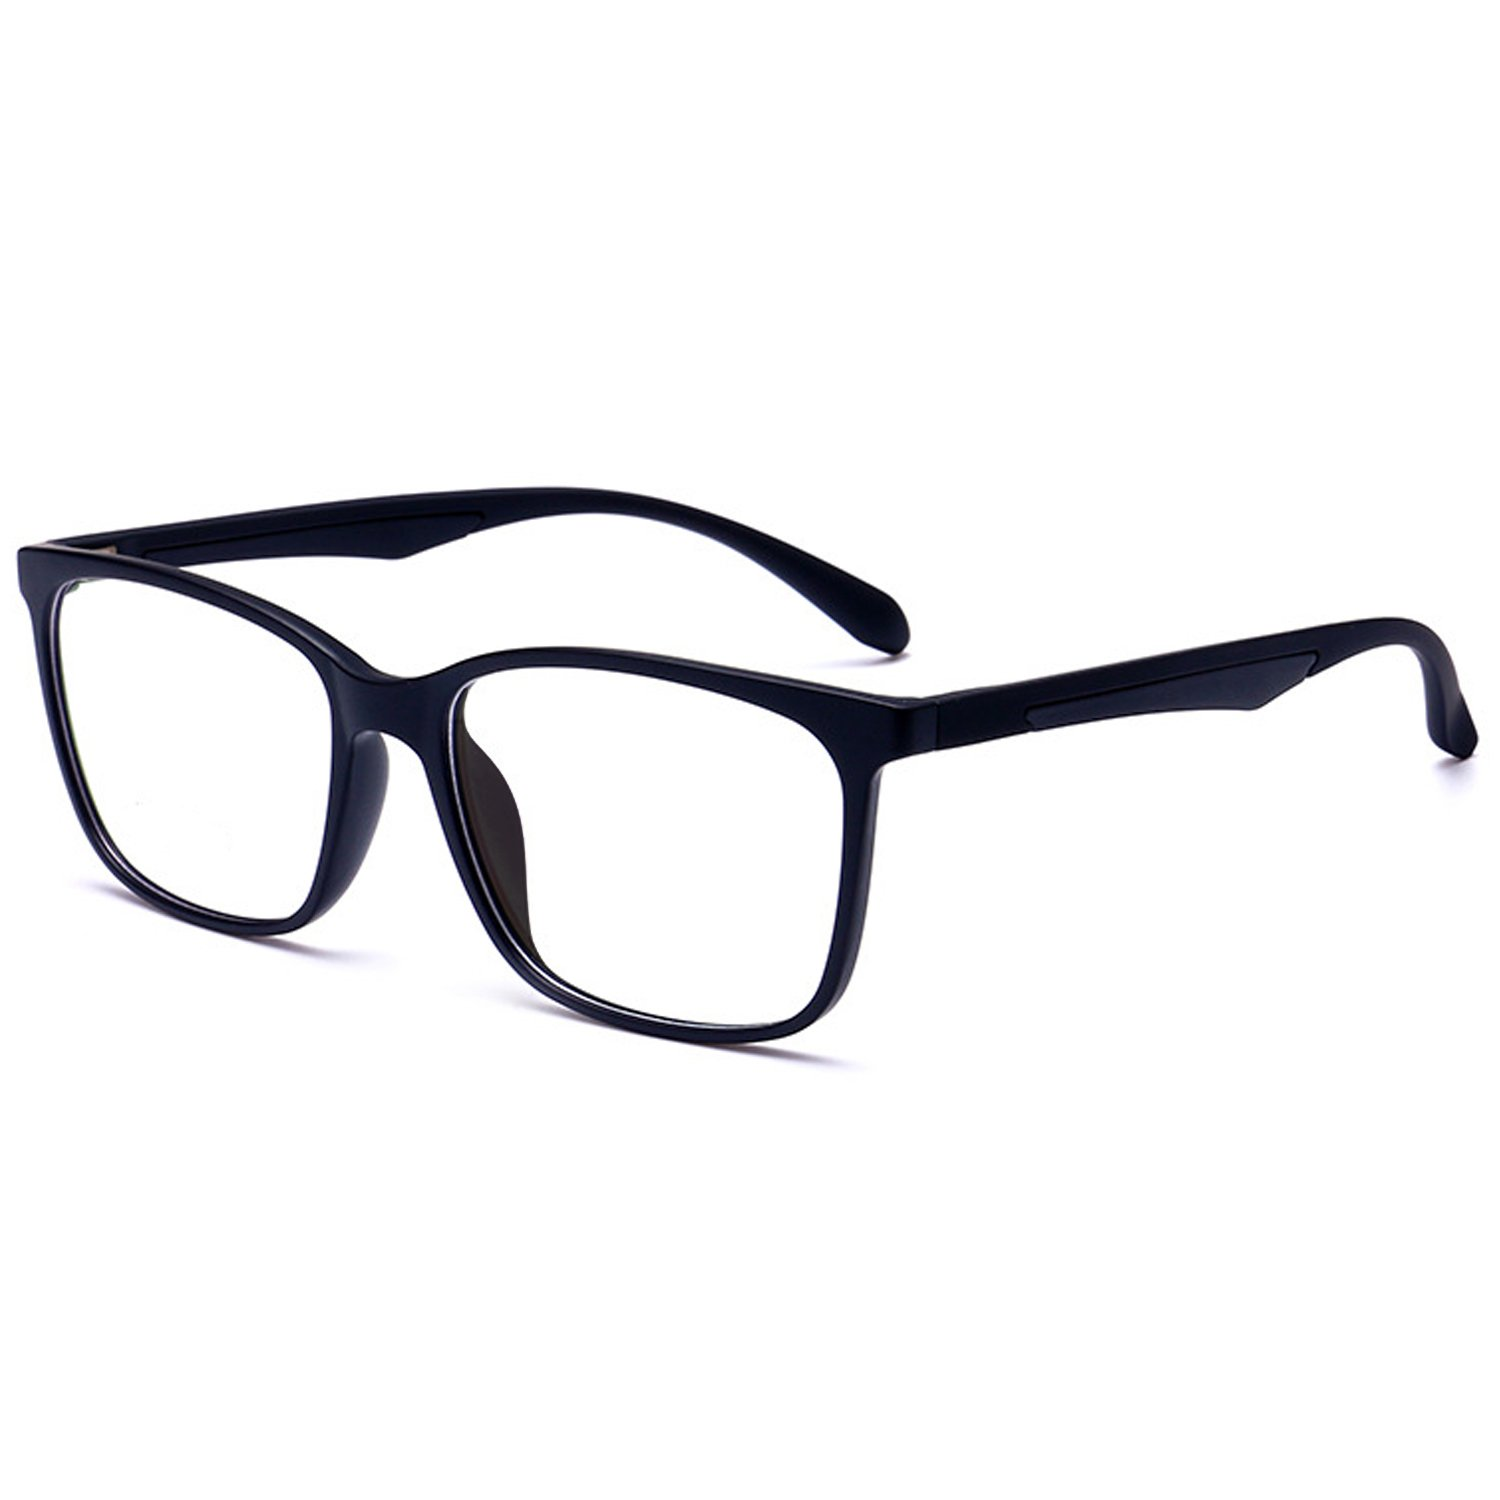 EXTREME SGD - CLEARANCE - Blue Light Blocking Glasses for Computer / Screen Use - (These are unisex frames ) Reduces eye strain, helps you sleep better, reduces headaches and more! - $22 on amazon with over 1,000 5 star reviews! Order a few pair for yourself, others, the office, your home etc - If you aren't using these yet, TRY IT...they make a huge difference! - ORDER 2 OR MORE FOR ONLY $5.99 EACH! SHIPS FREE!